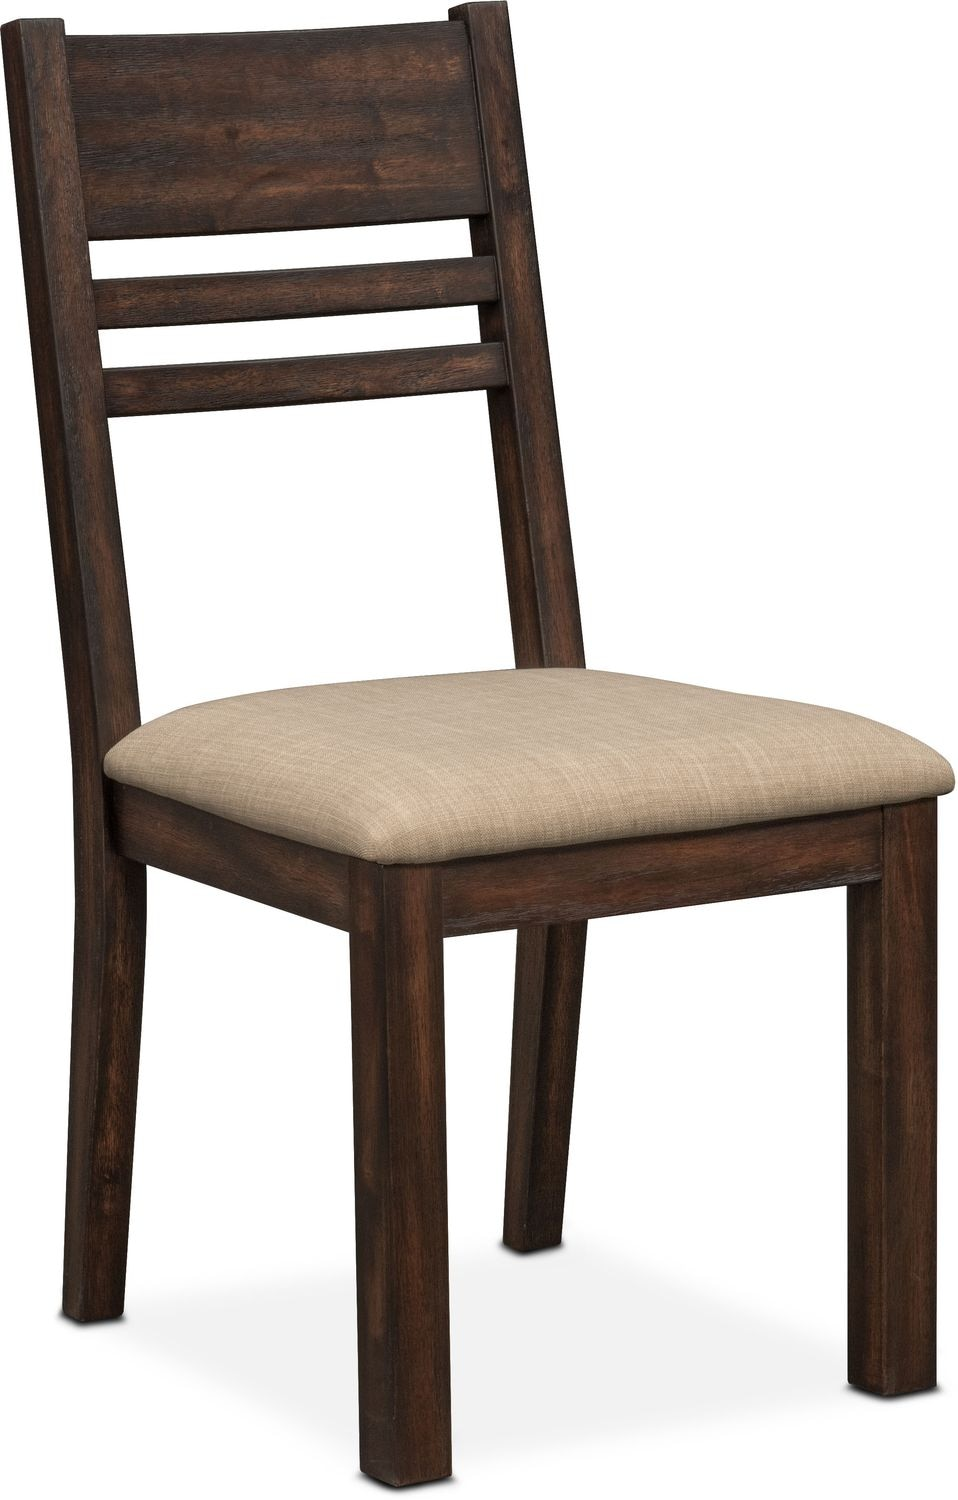 Tribeca Side Chair - Tobacco